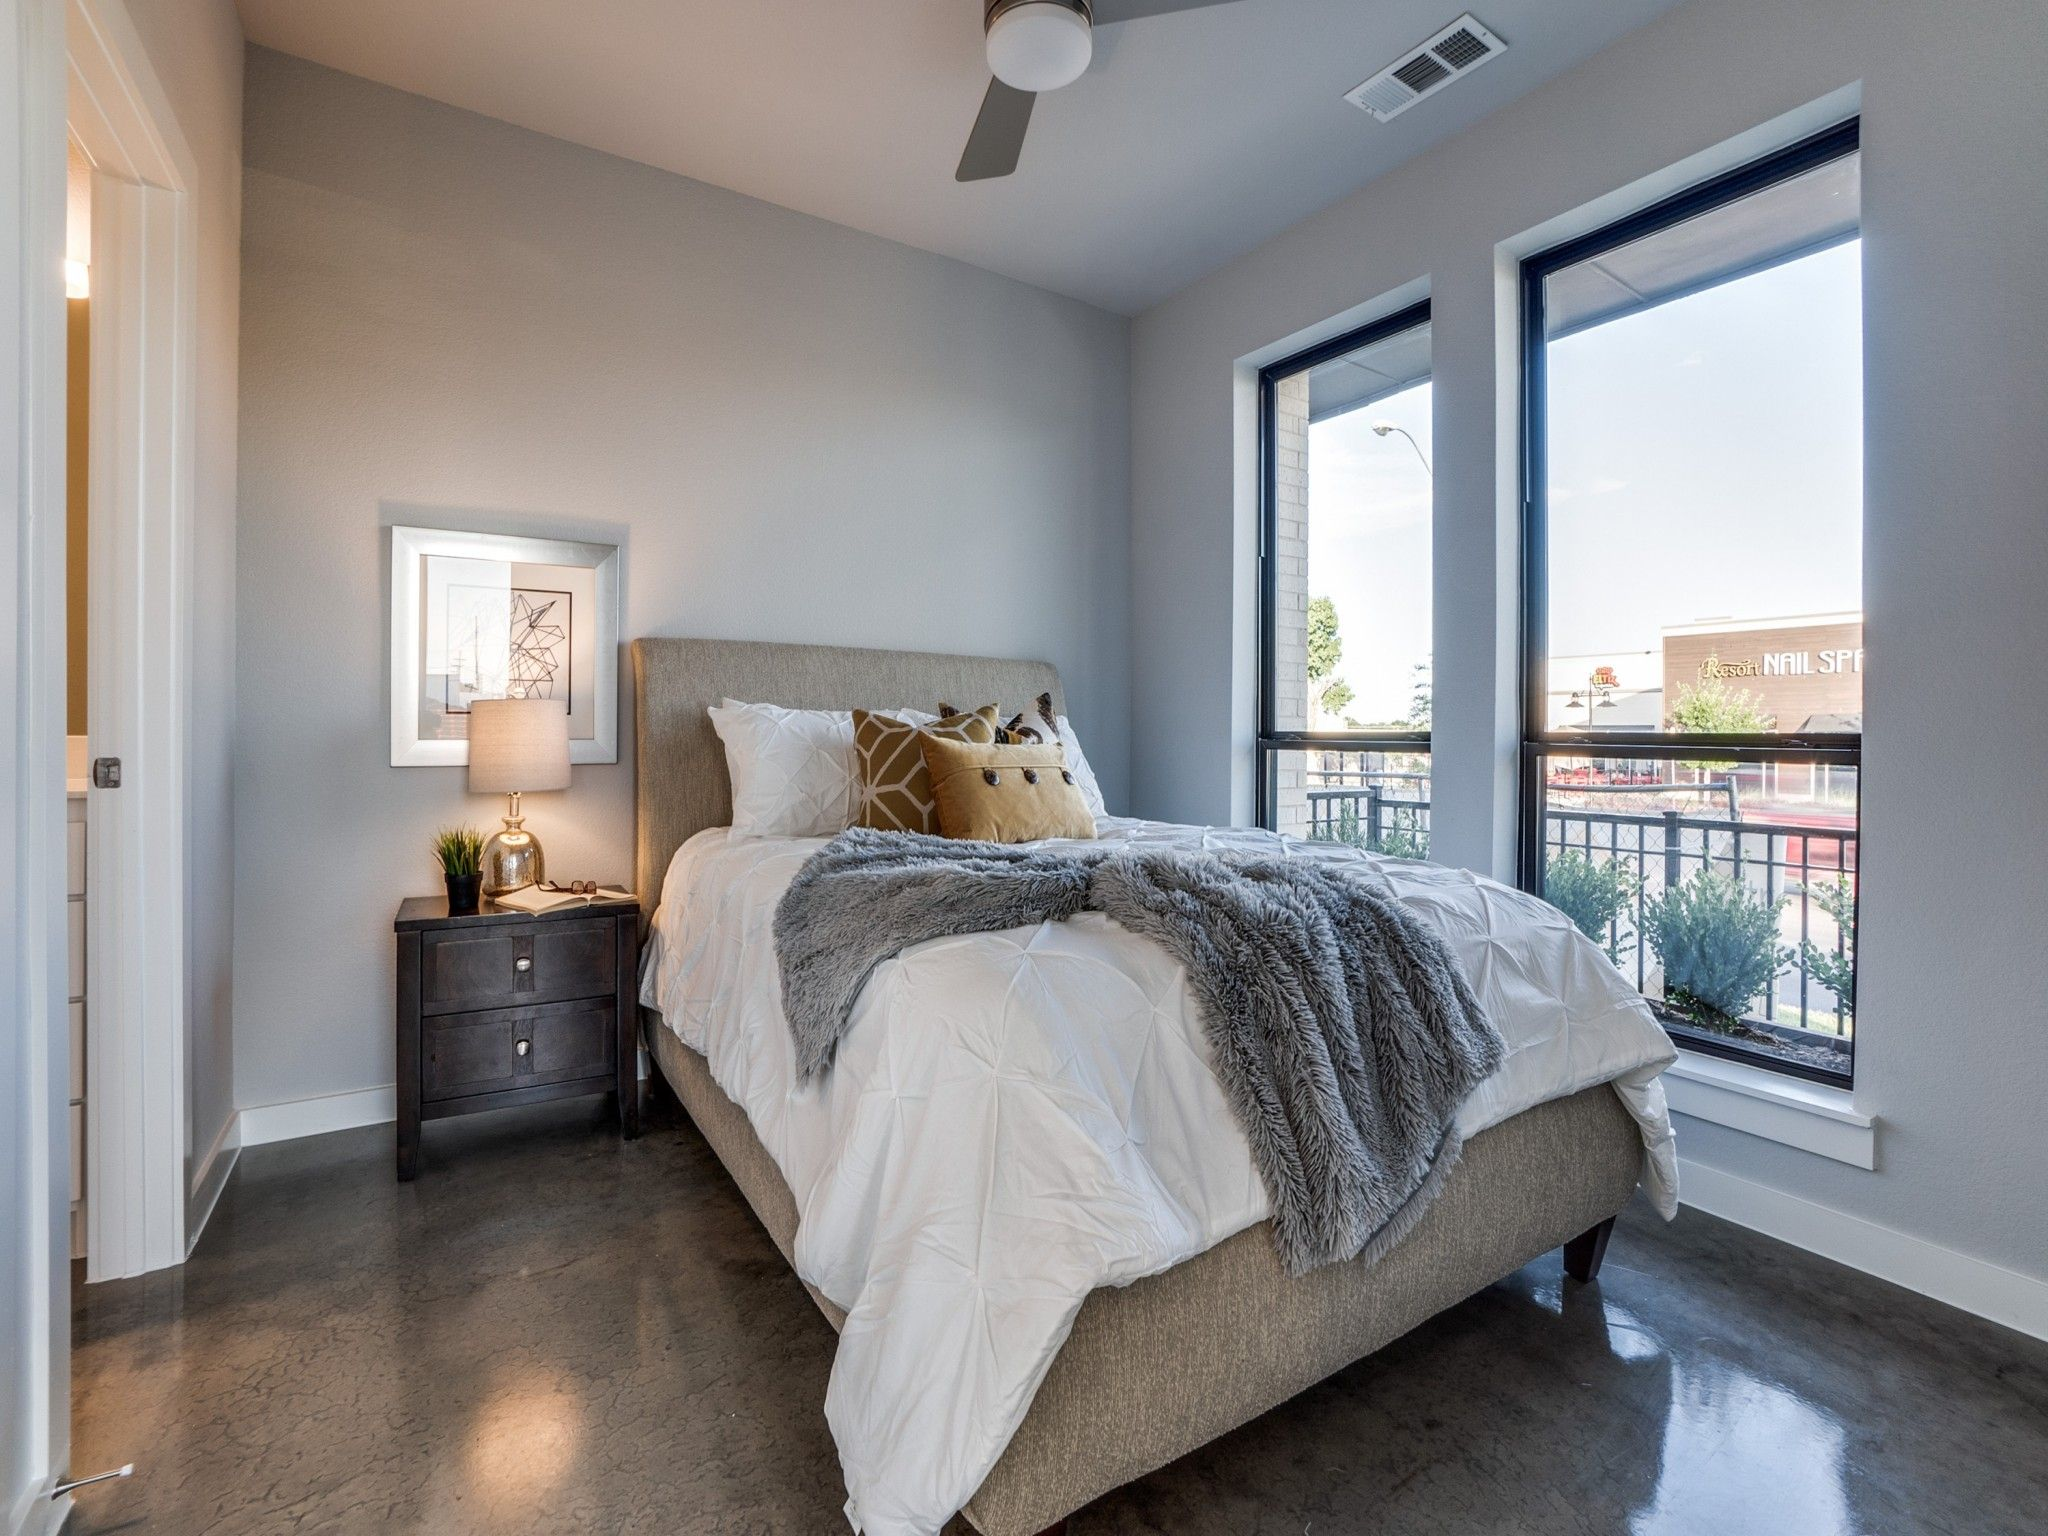 Bedroom featured in the Mulholland By Centre Living Homes in Dallas, TX